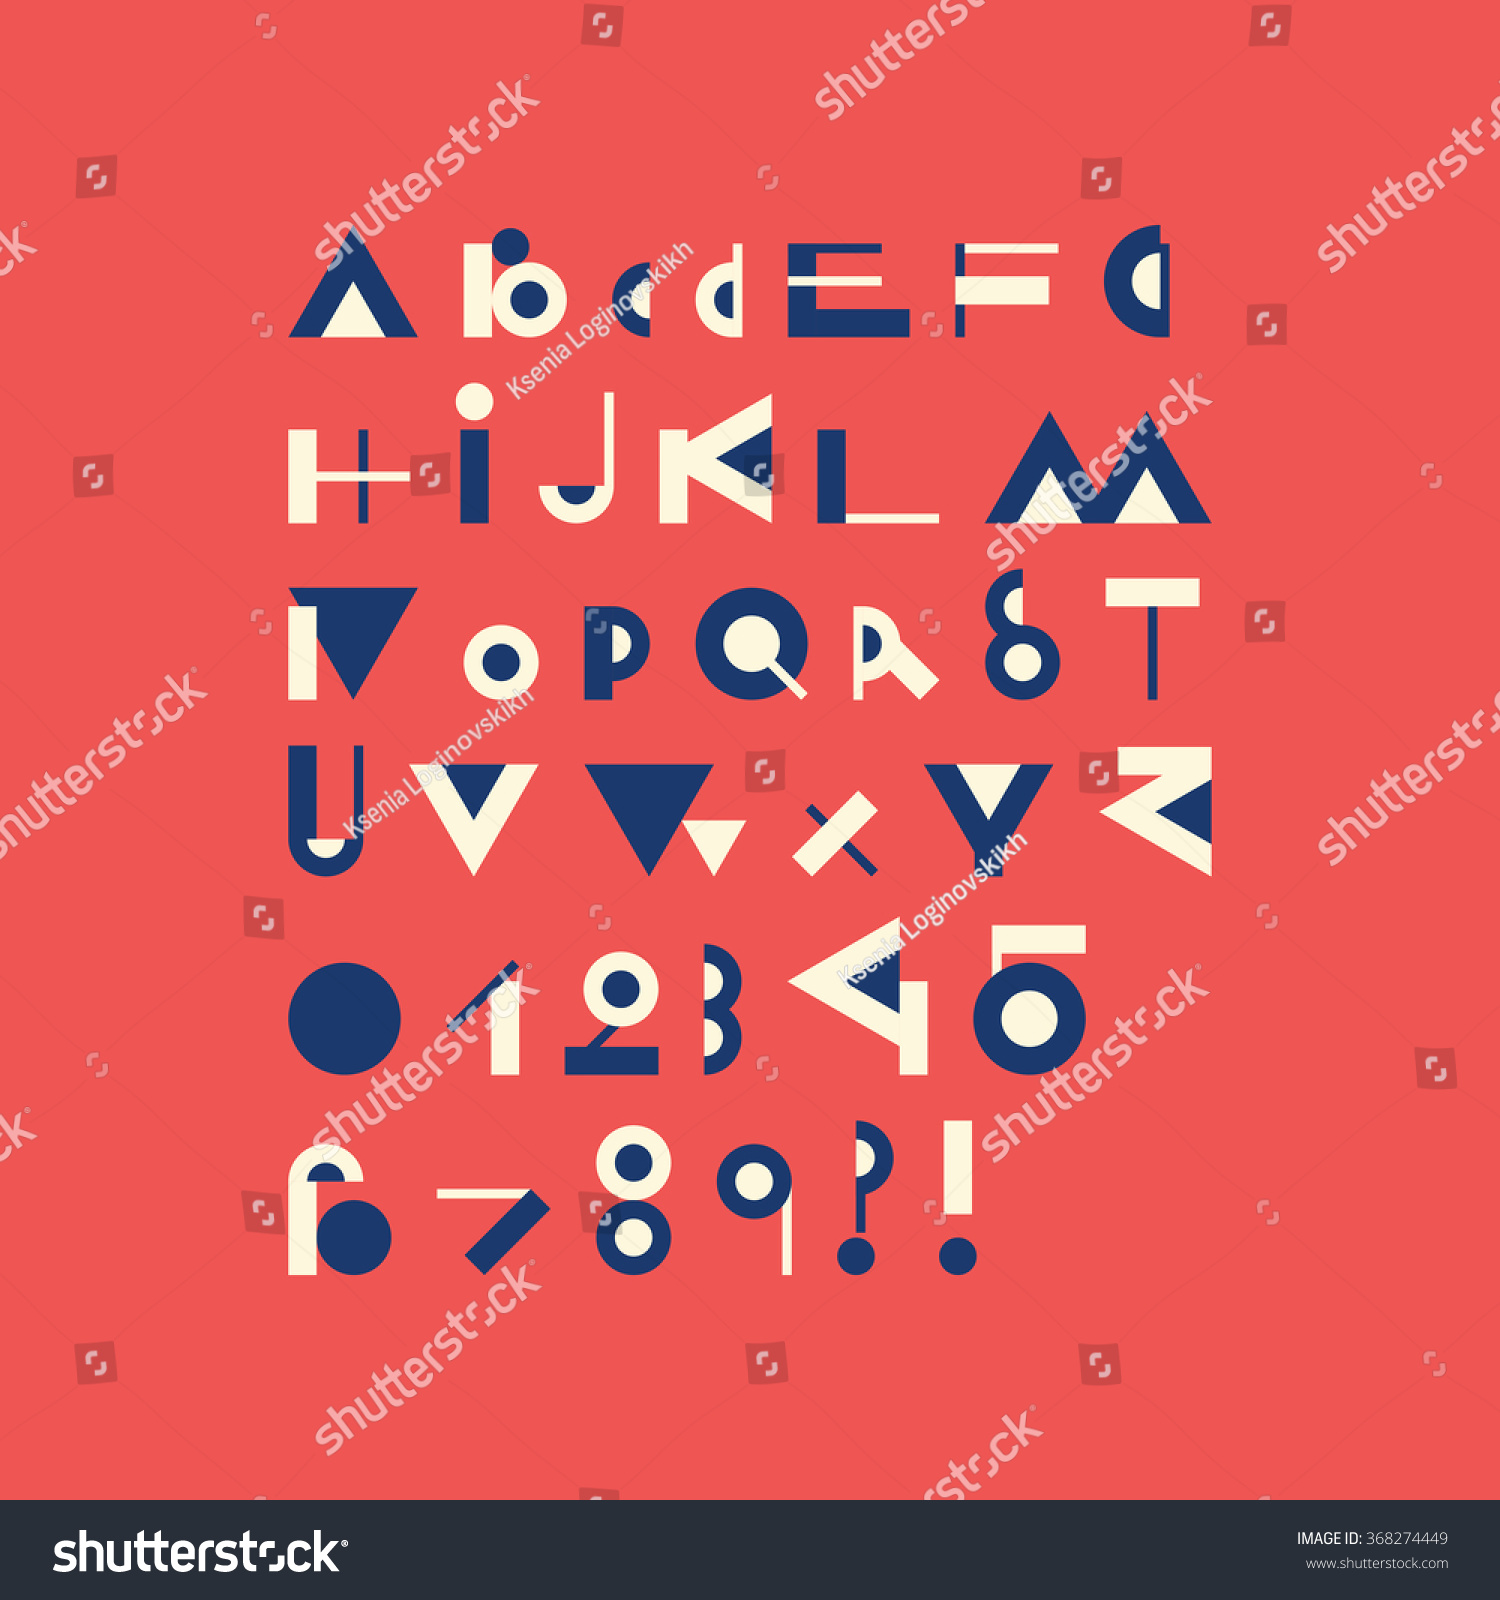 Royalty Free Vector Geometric Font